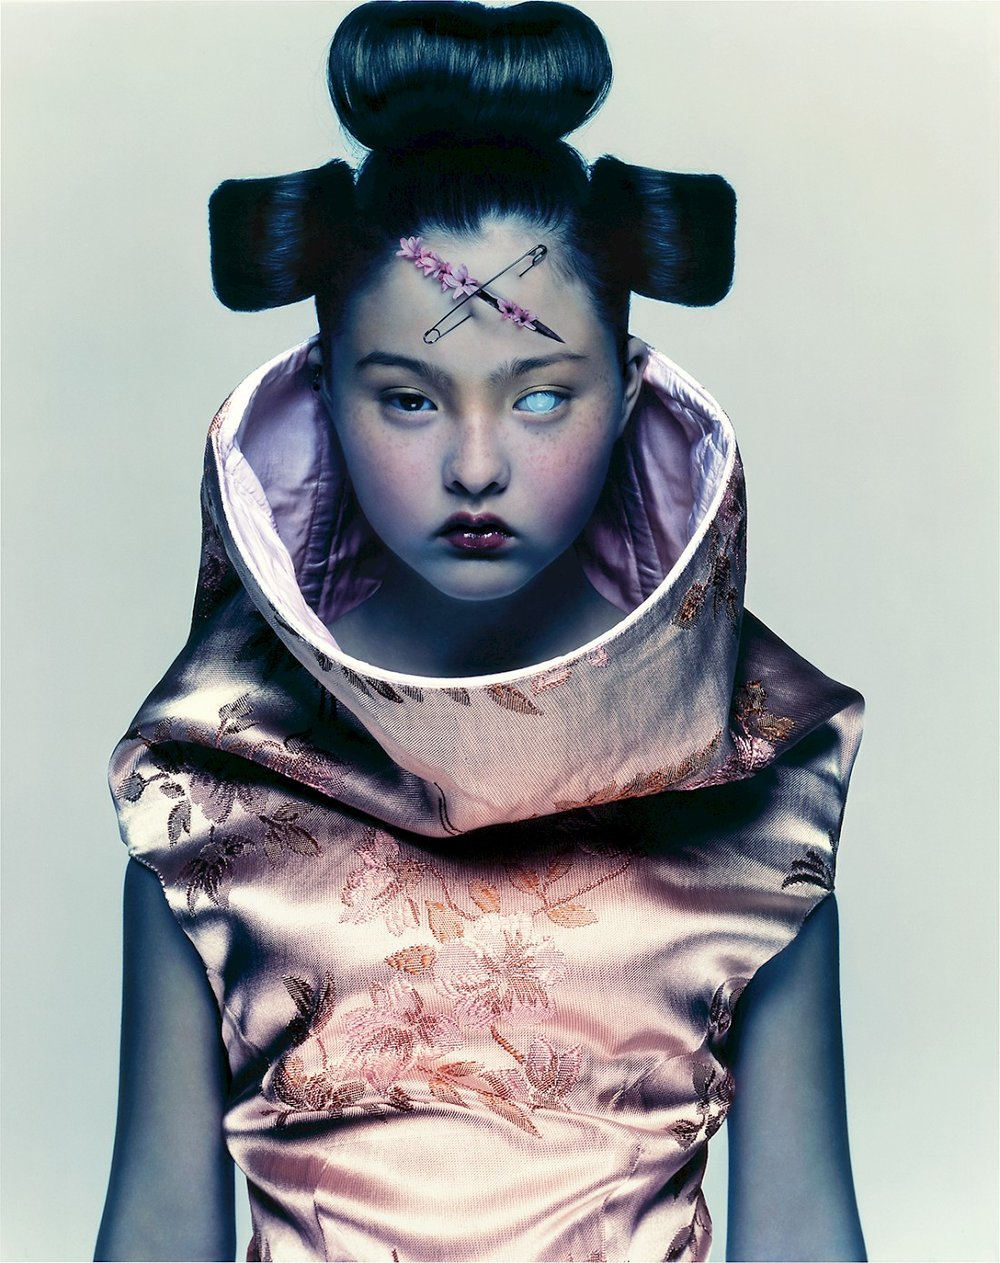 Devon Aoki  in Alexander McQueen by Nick Knight  for  Visionaire  magazine, 1997.